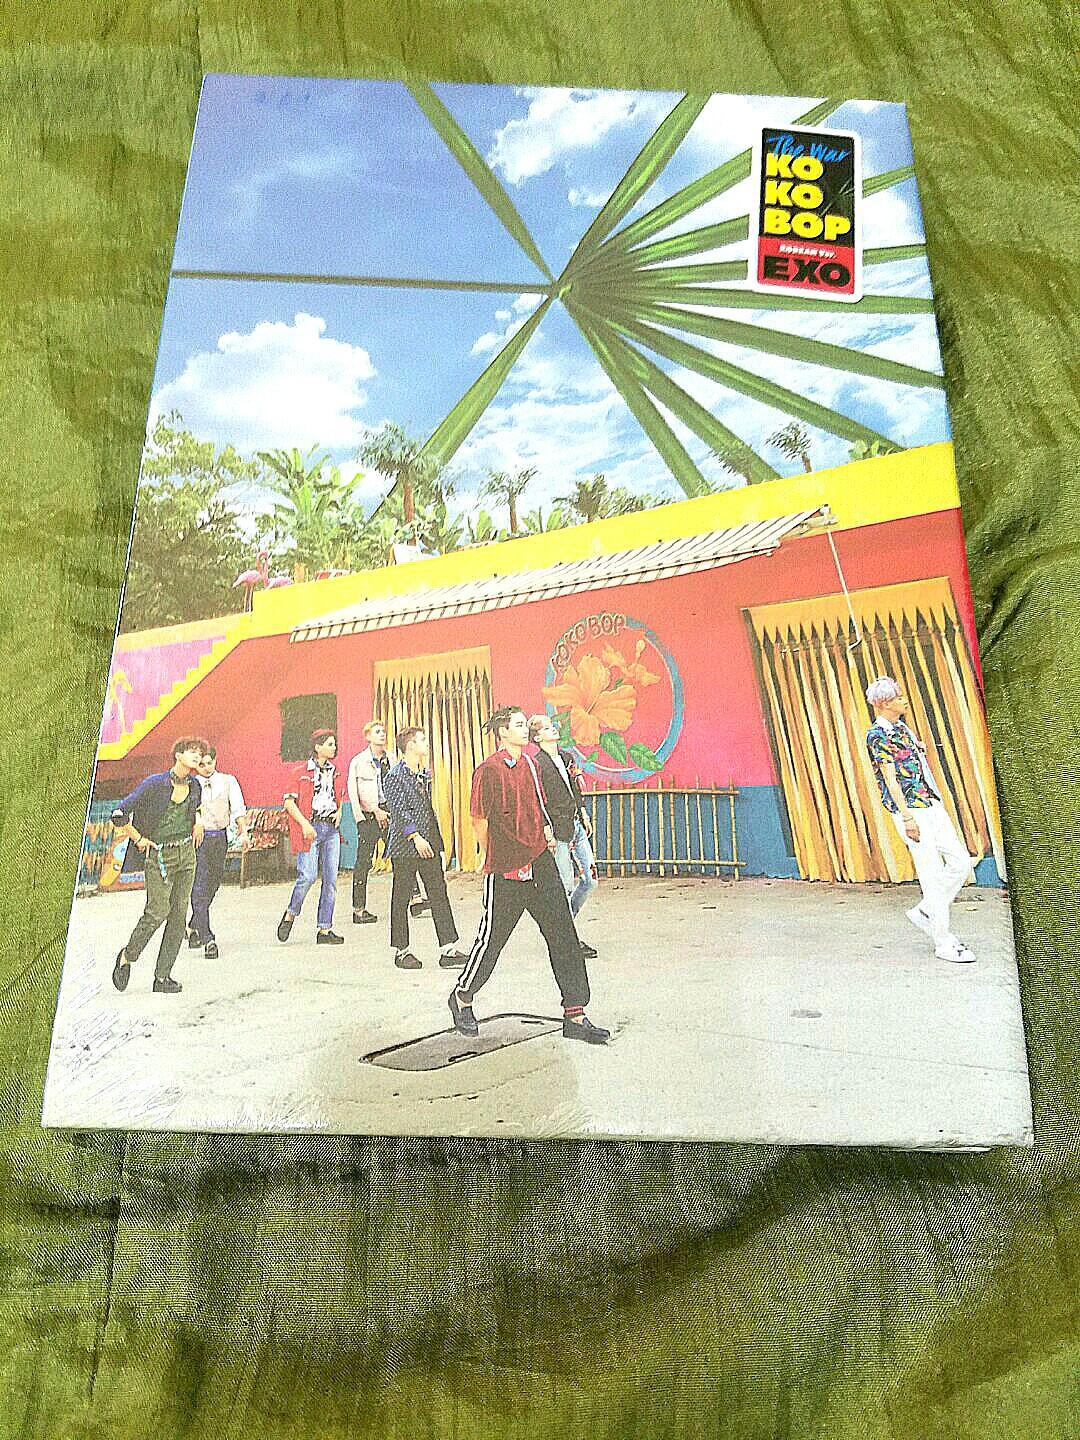 Album EXO KO KO BOP The war version + poster